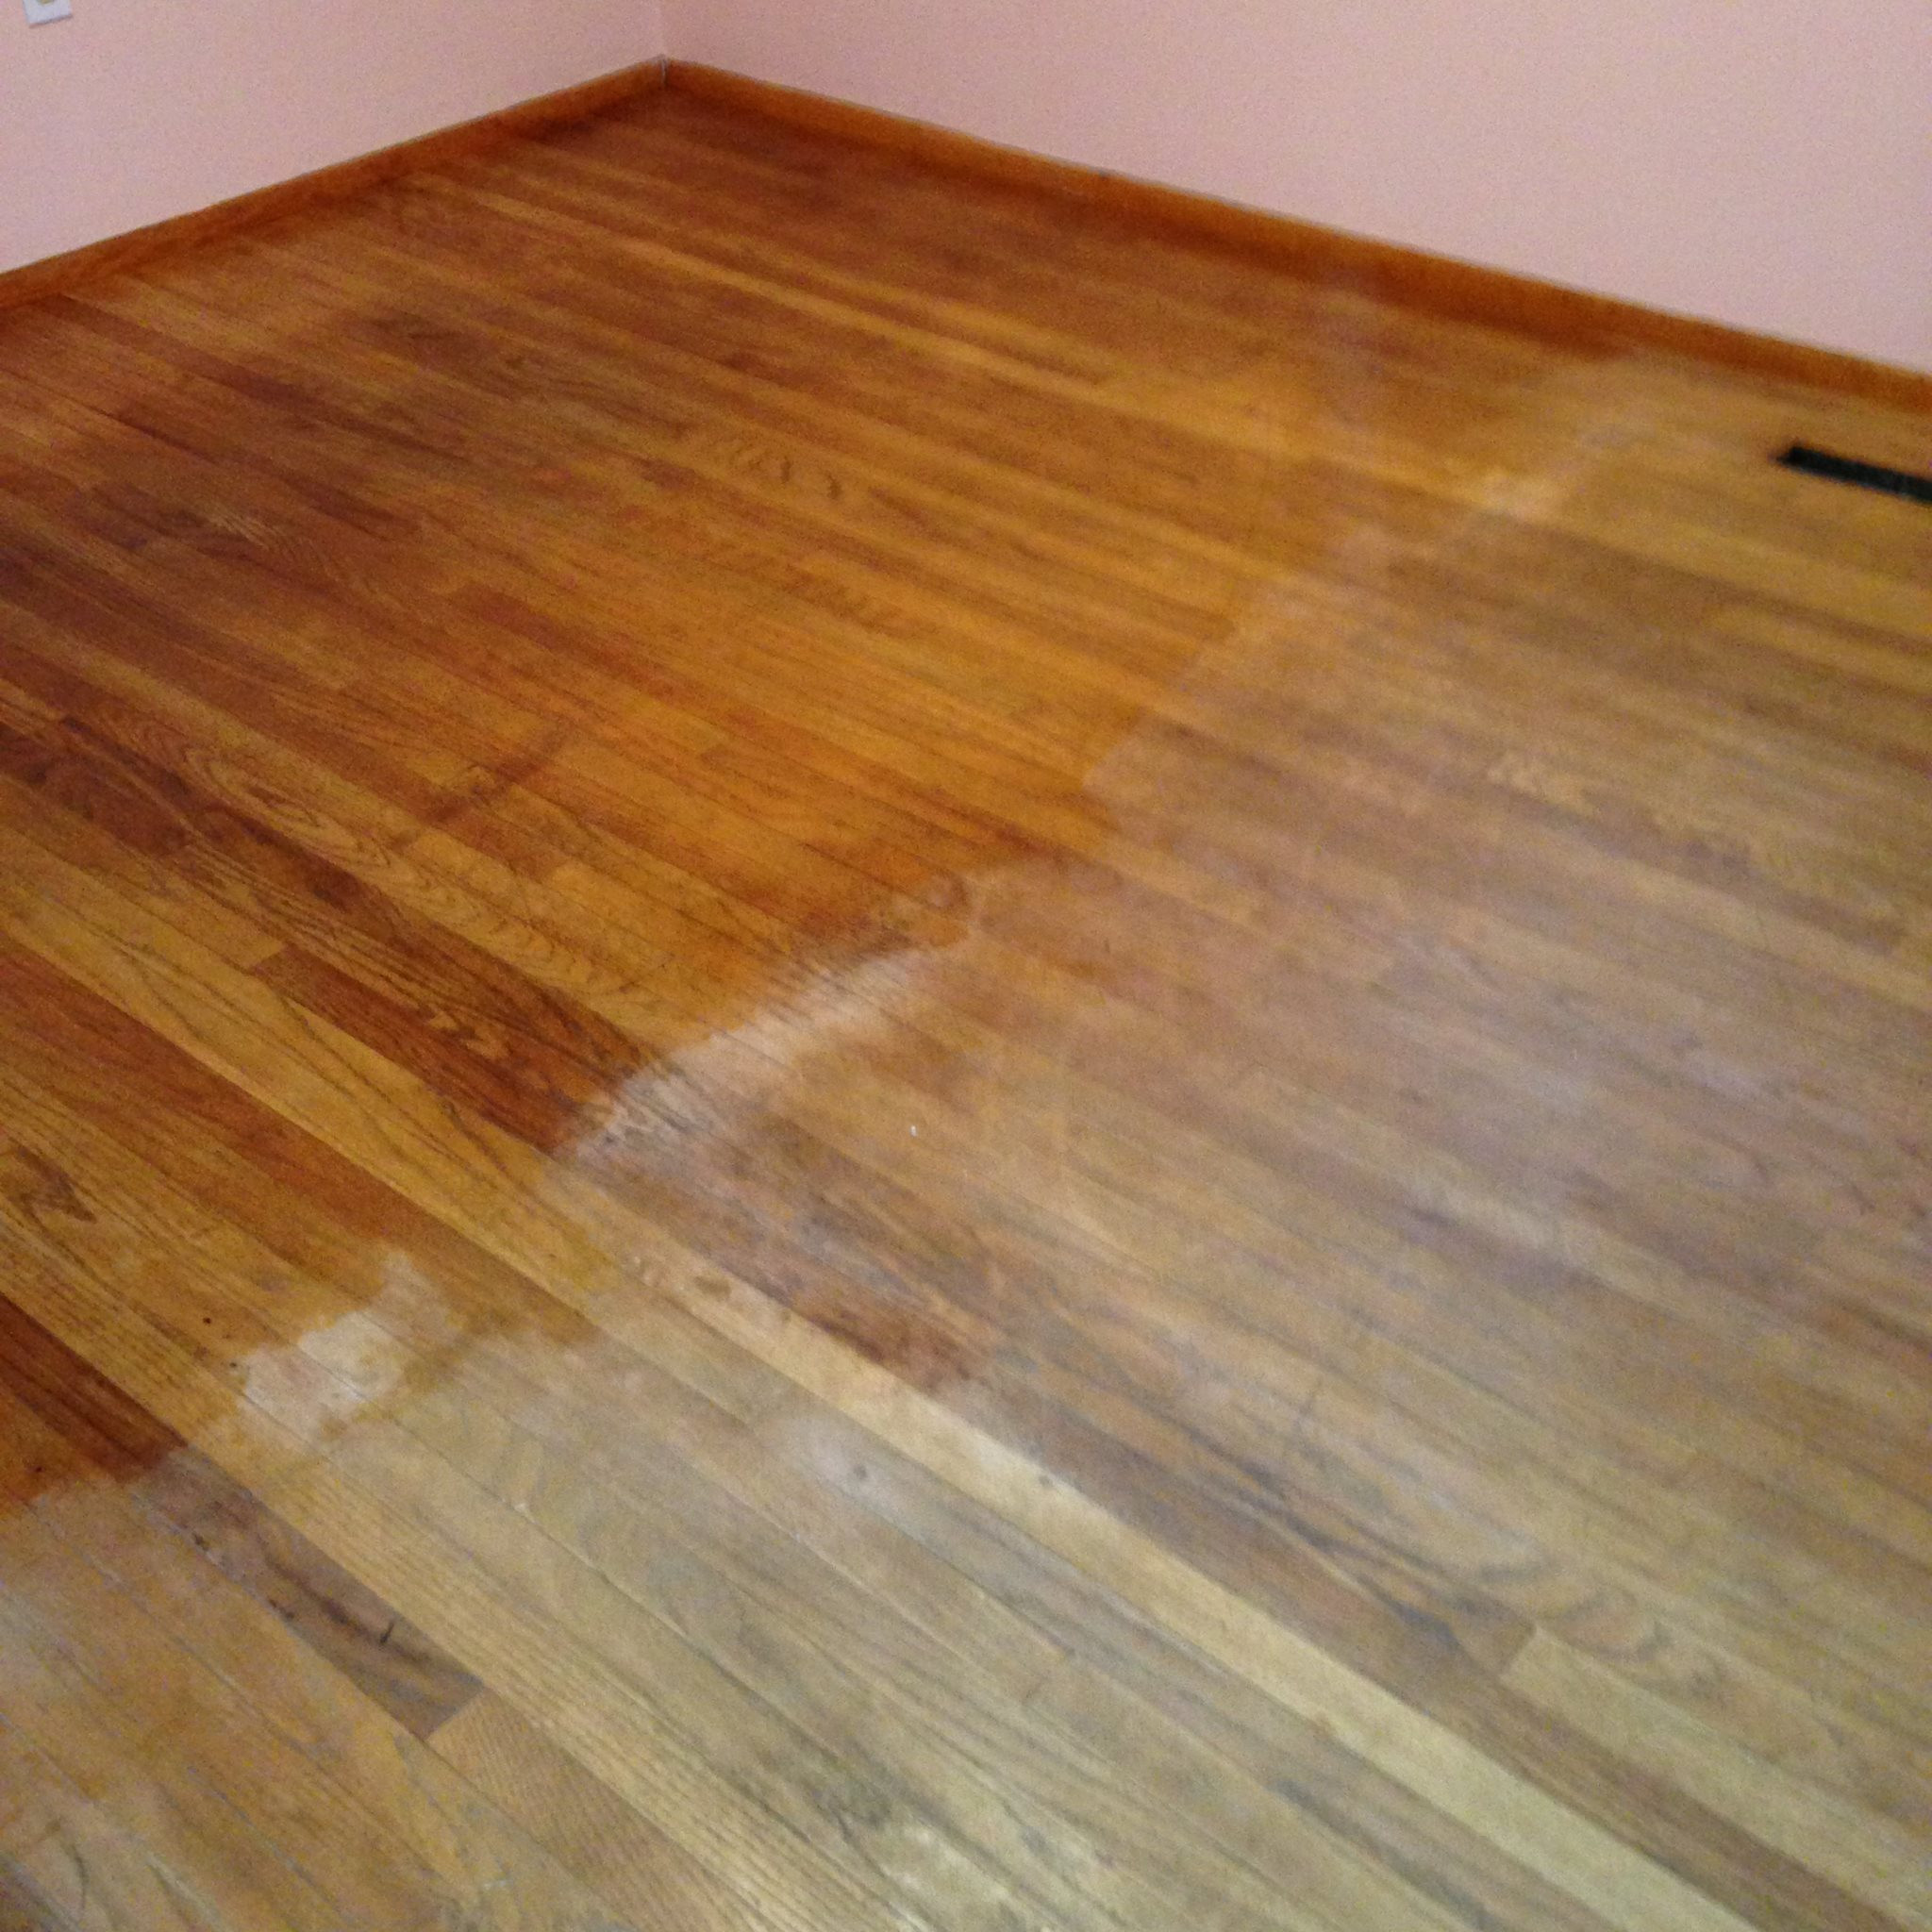 wood filler for hardwood floors of 15 wood floor hacks every homeowner needs to know with wood floor hacks 15